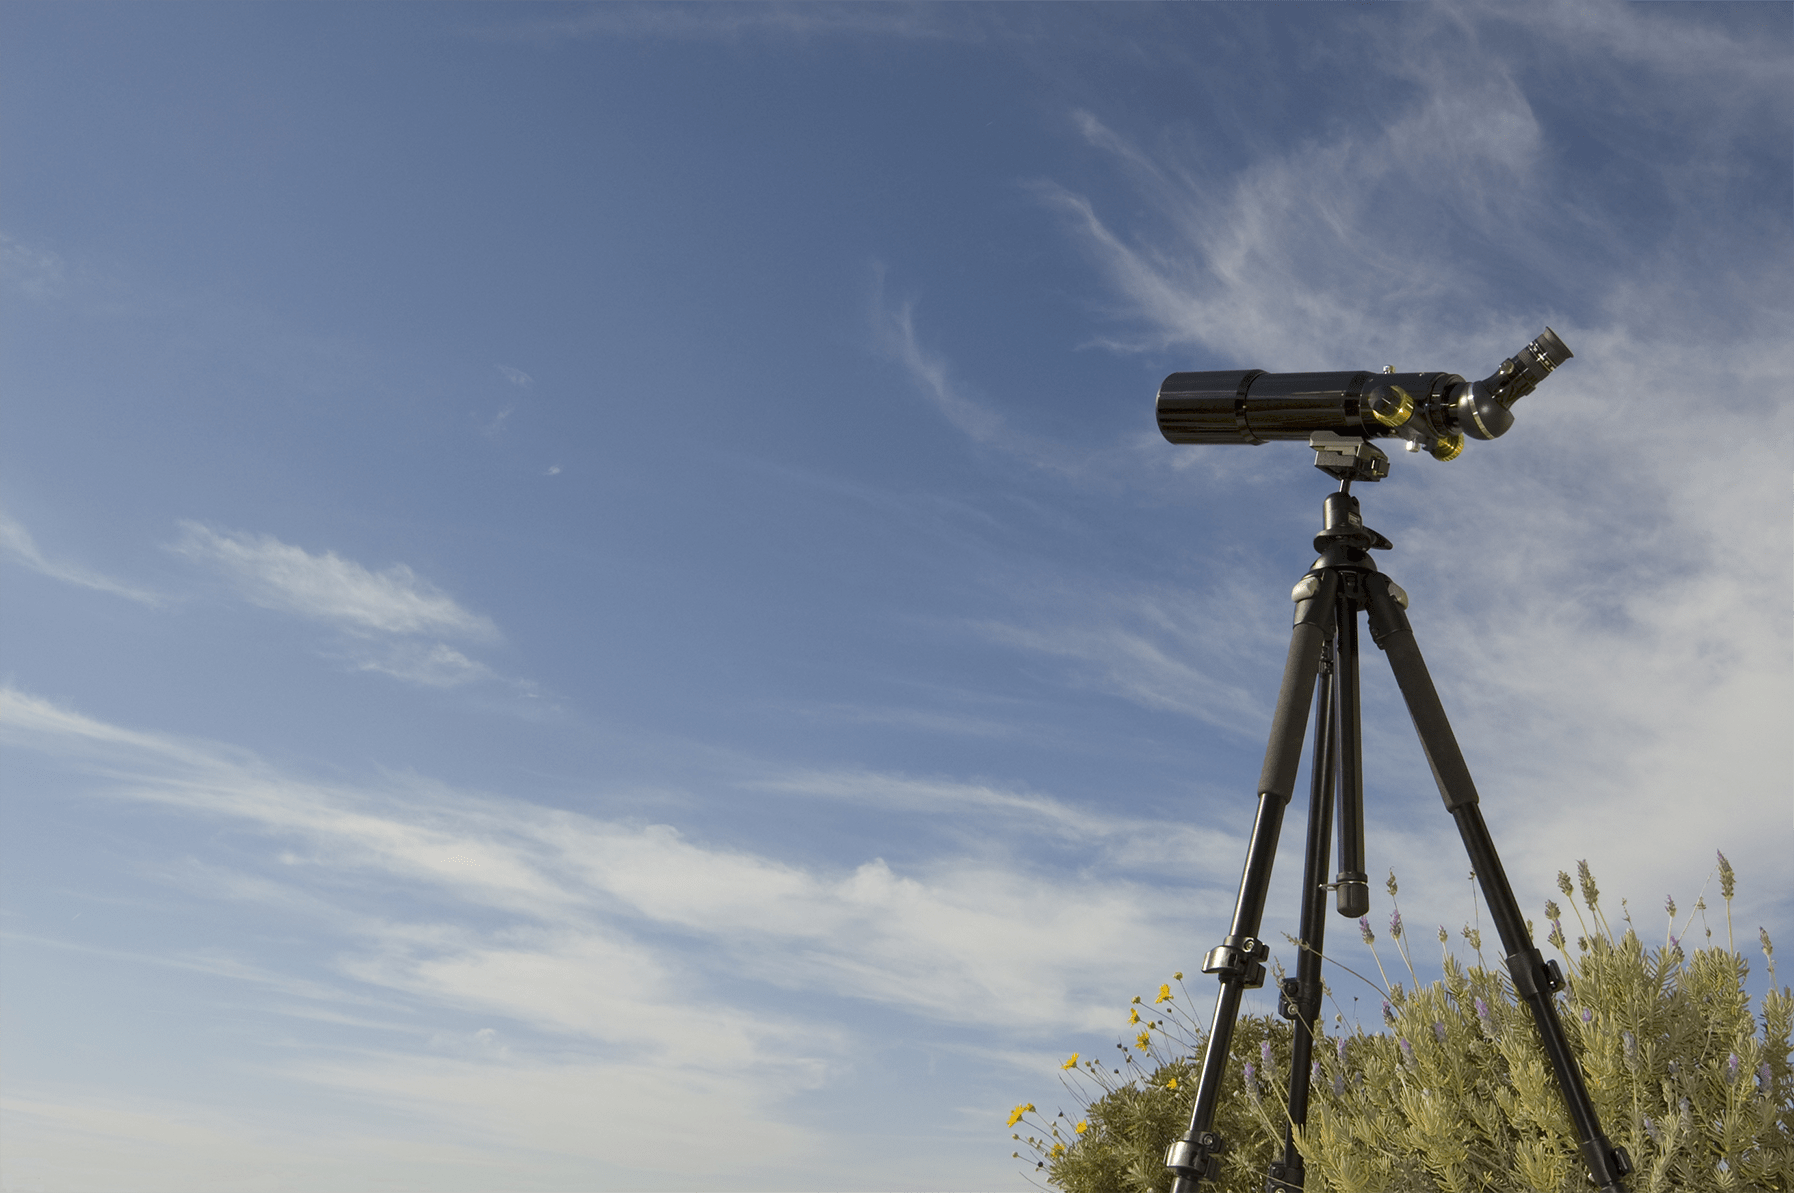 spotting scope image in day light